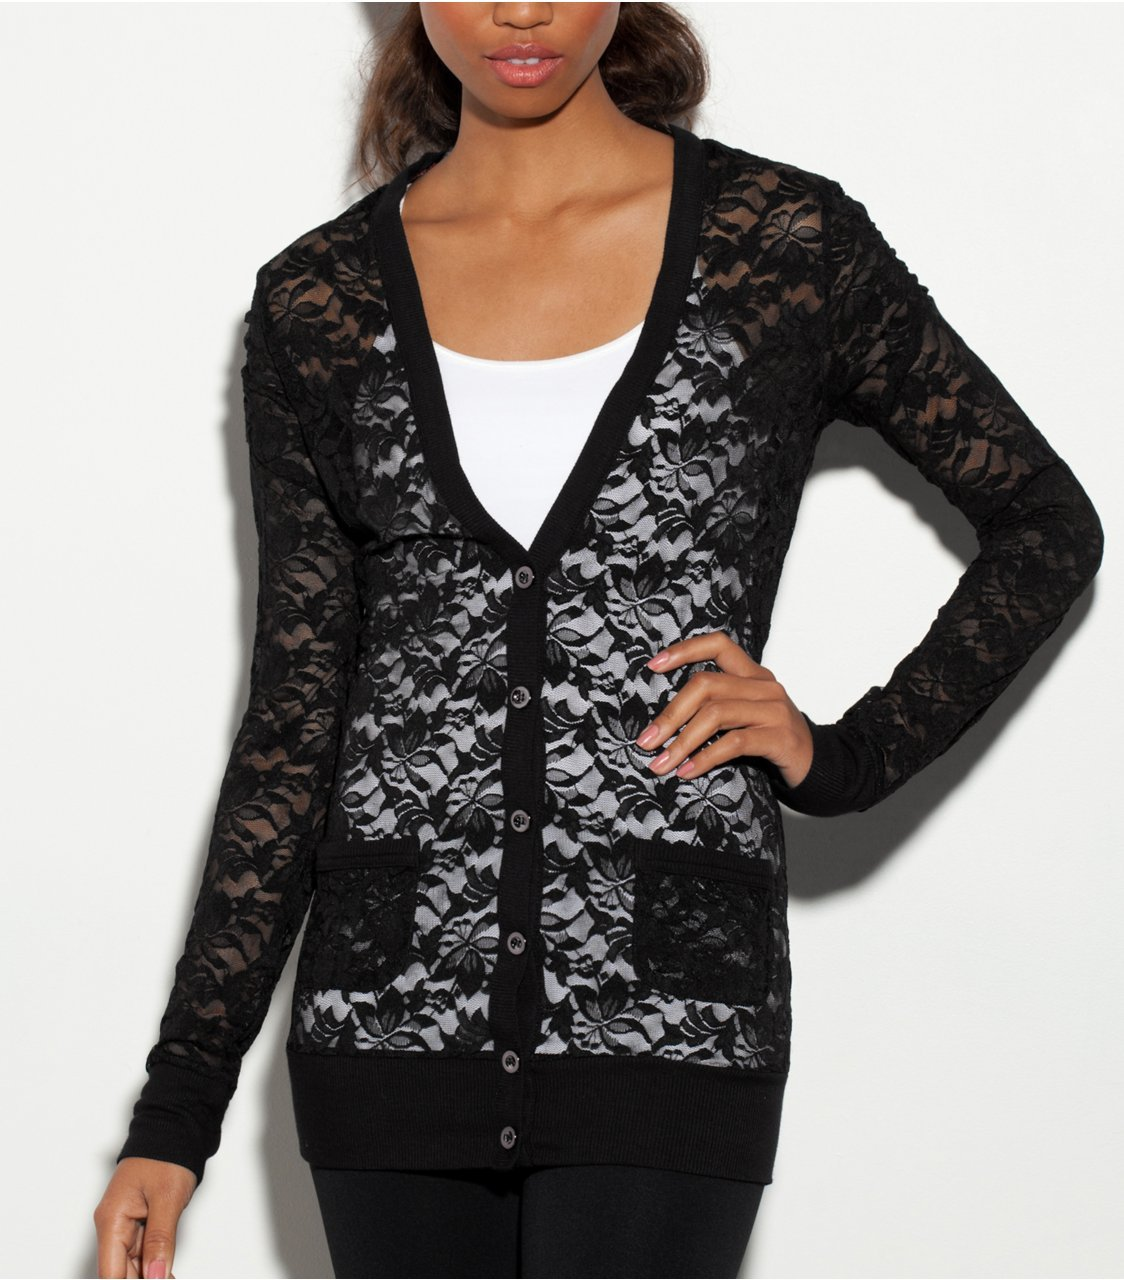 G by GUESS Kelse Lace Cardigan